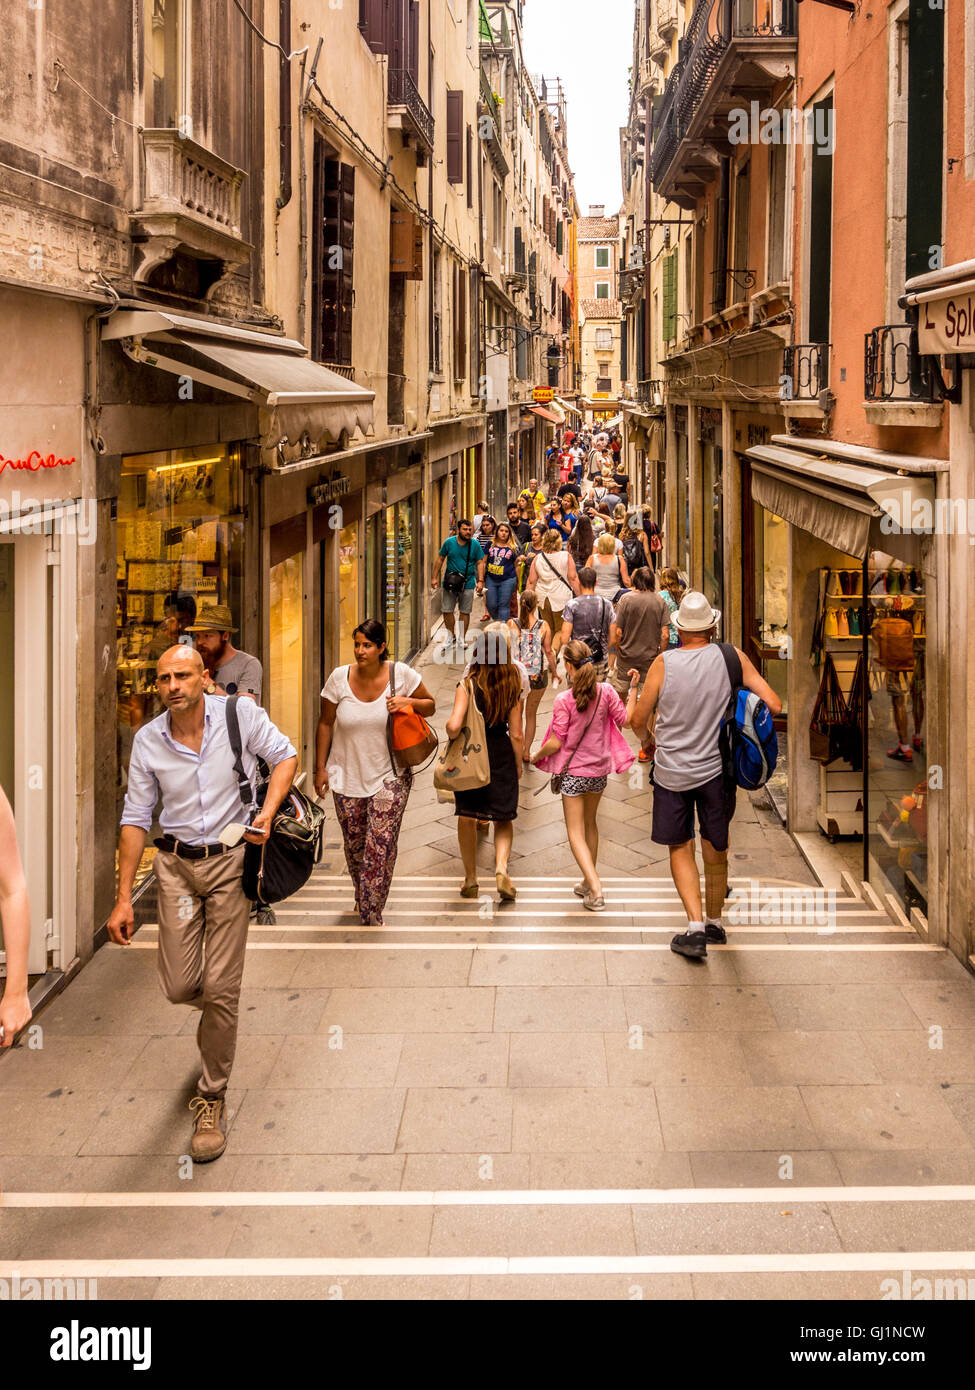 Tourists and shoppers in a narrow street in Venice, Italy. - Stock Image